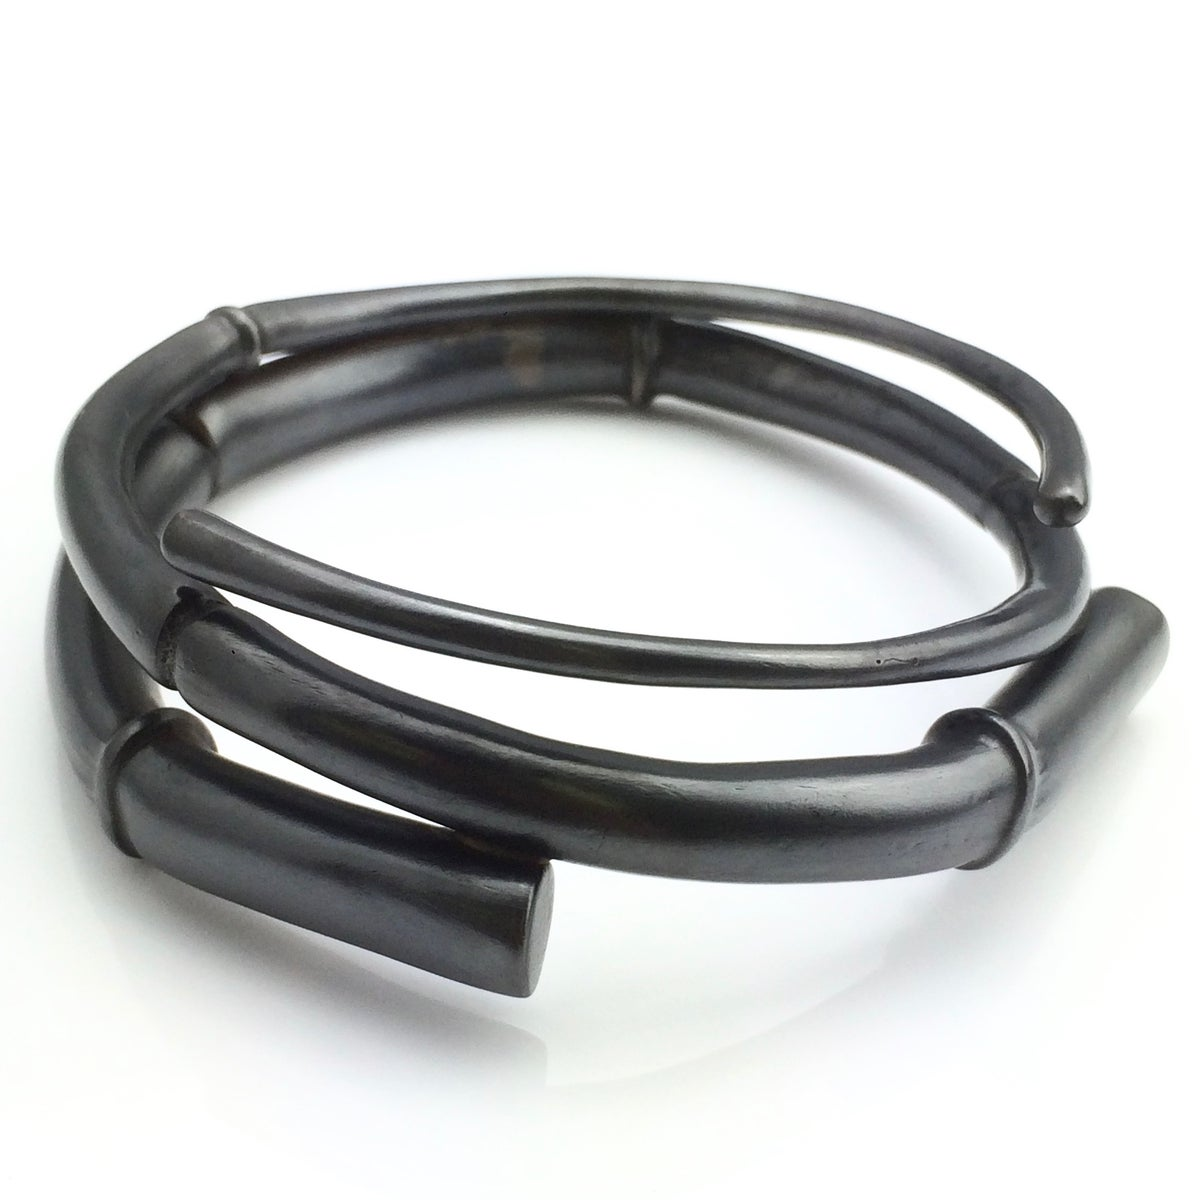 Image of Black Double Tendril Bangle Bracelet 01